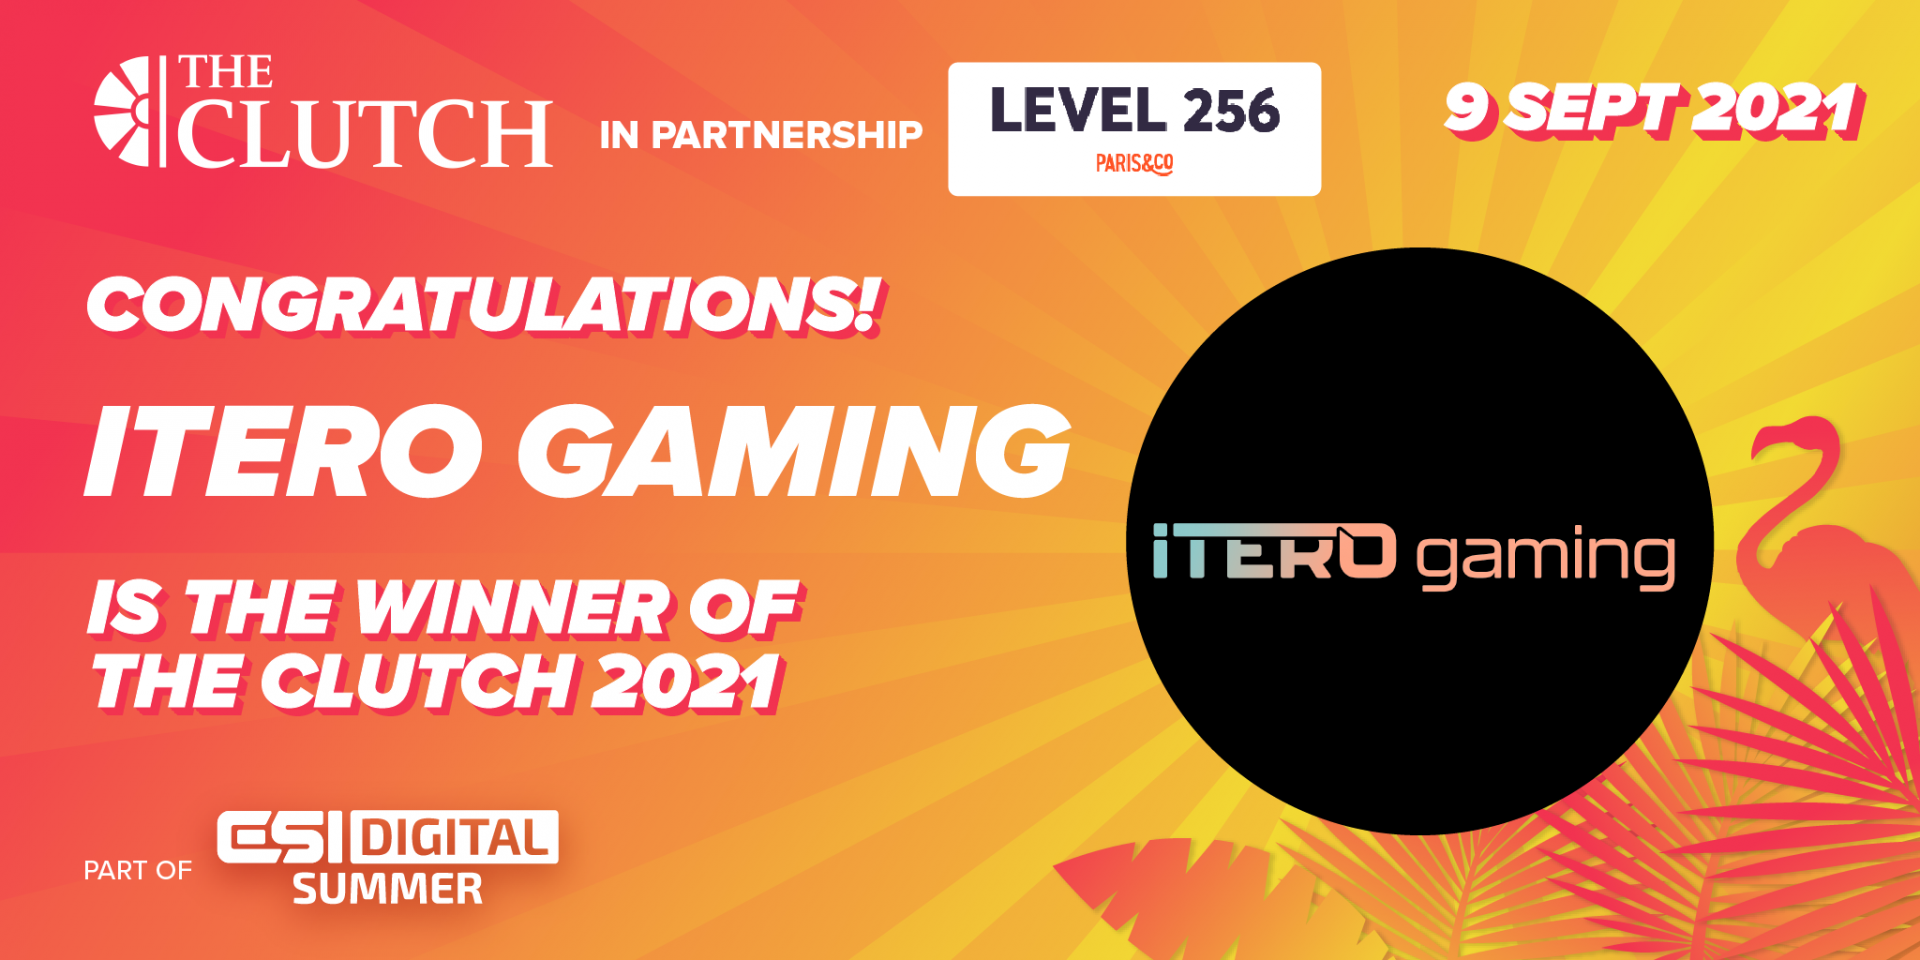 iTero Gaming wins The Clutch 2021